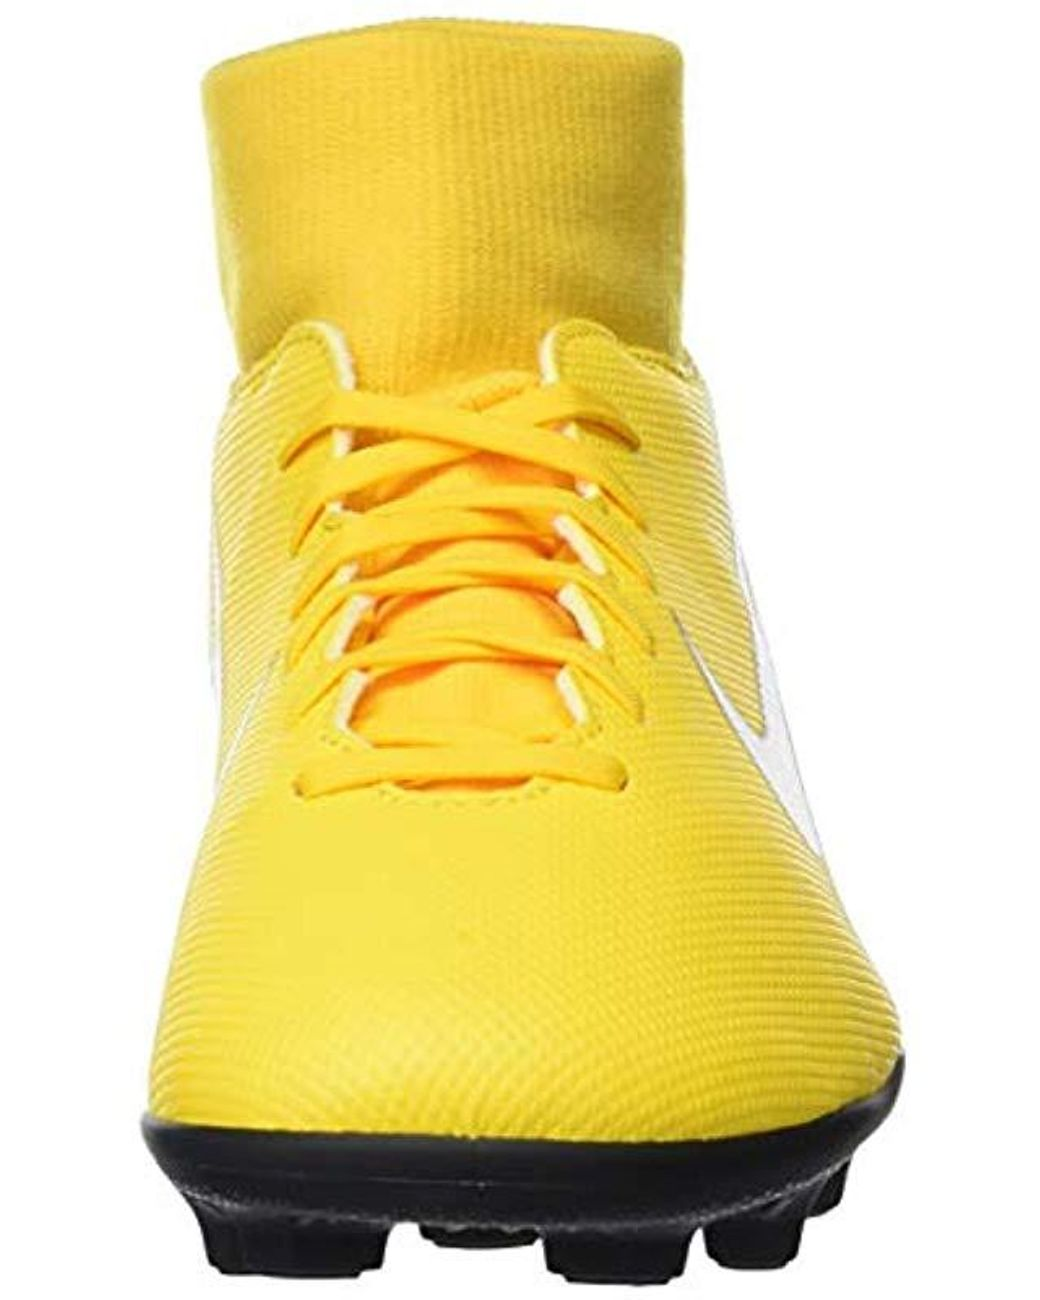 best authentic d9f52 60f5e Nike Superfly 6 Club Njr Mg in Yellow for Men - Save 54% - Lyst